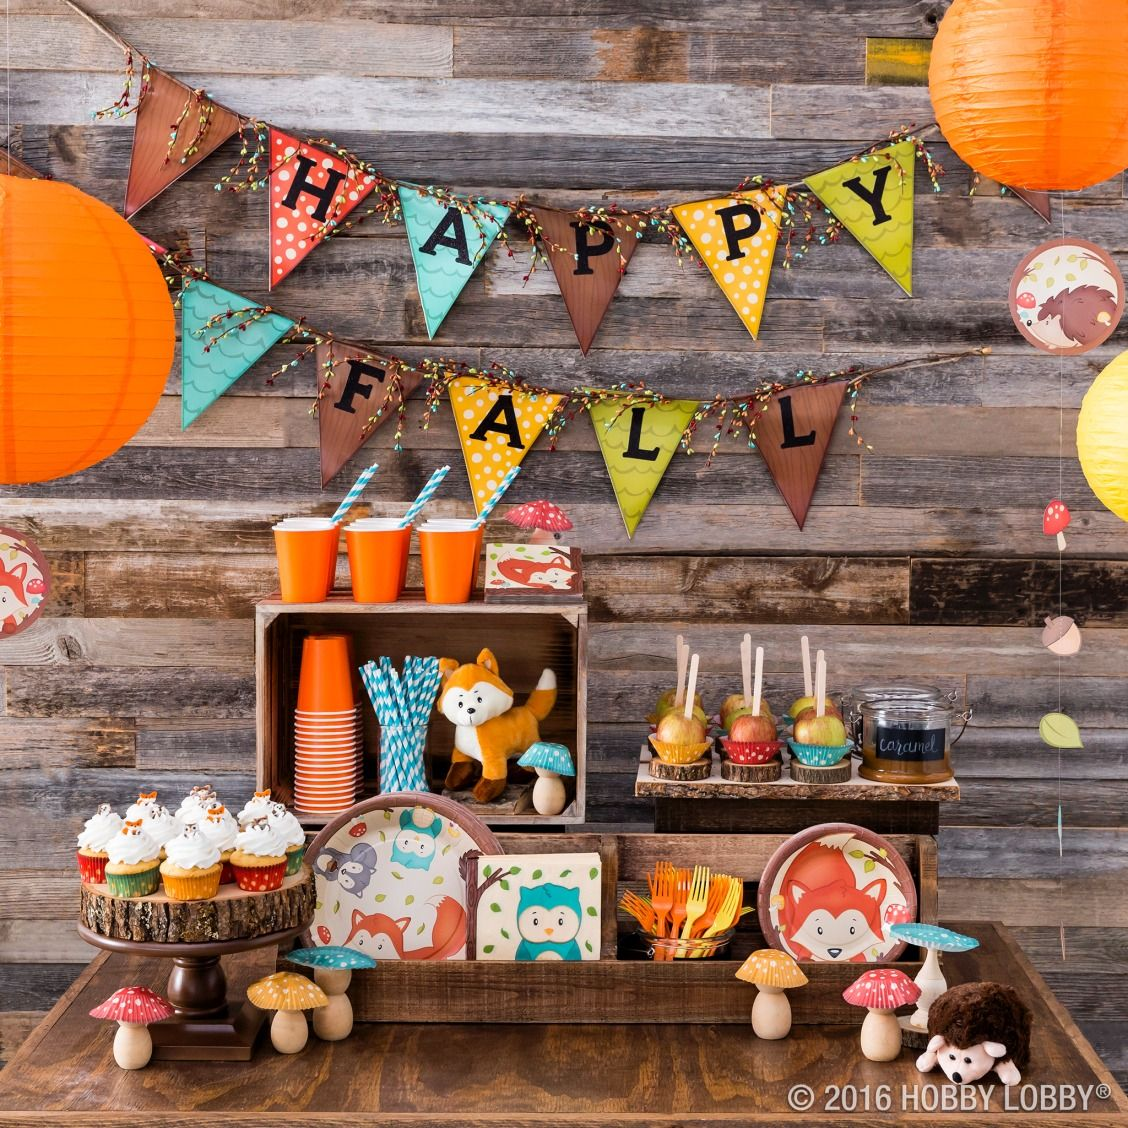 Host A Woodland Themed Fall Festival Complete With Cute Furry Friends And Woodsy Decor